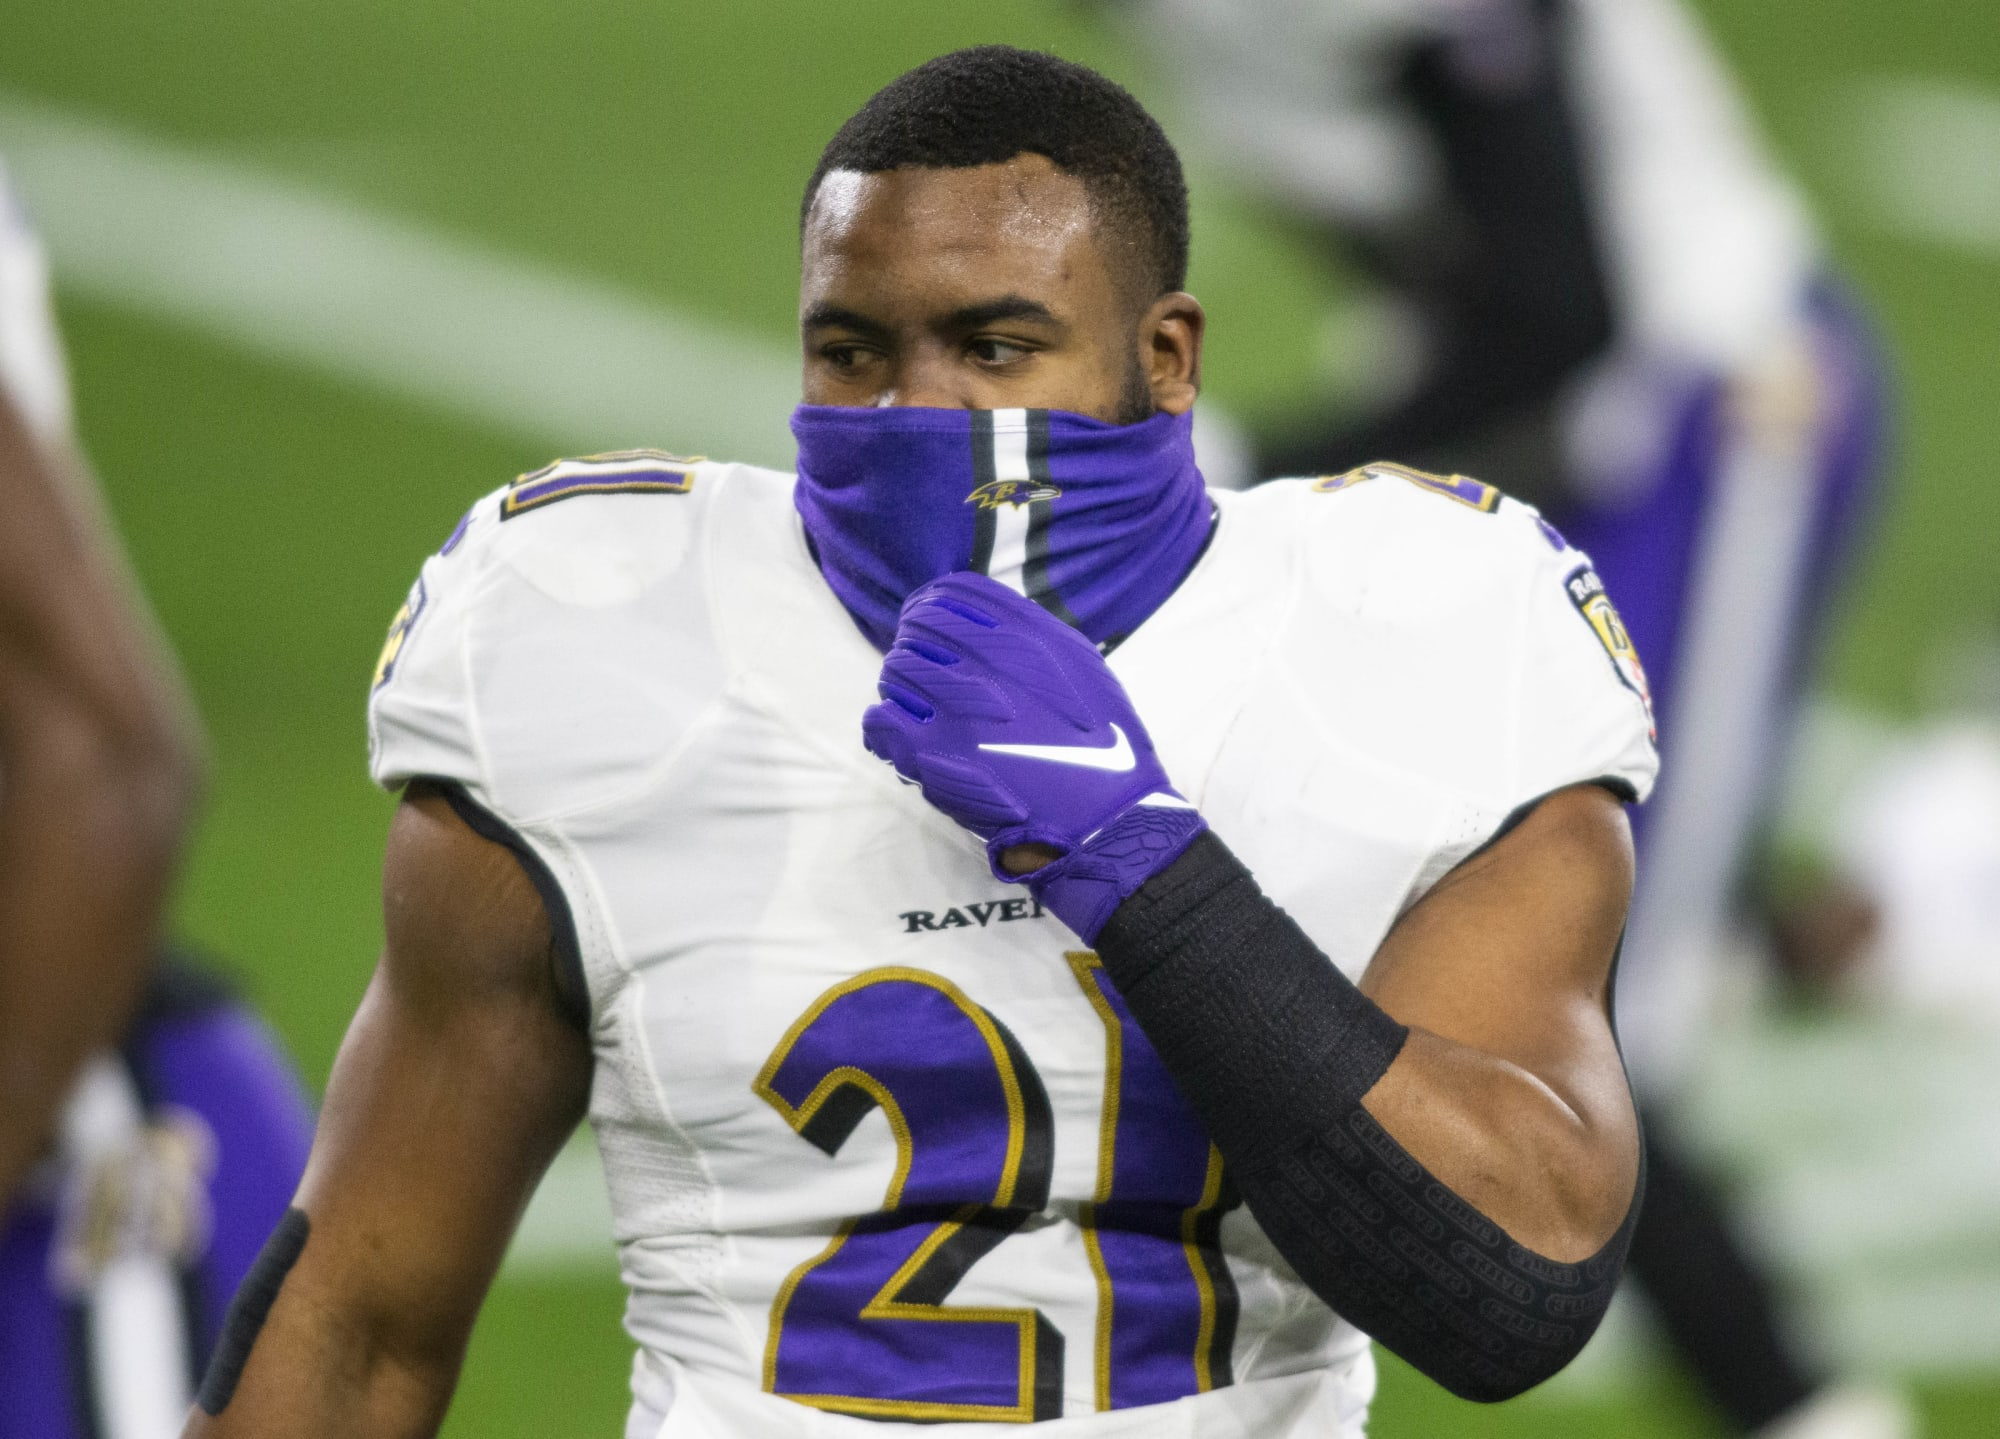 Why are Ravens benching Mark Ingram for 'salary cap reasons' in the playoffs?